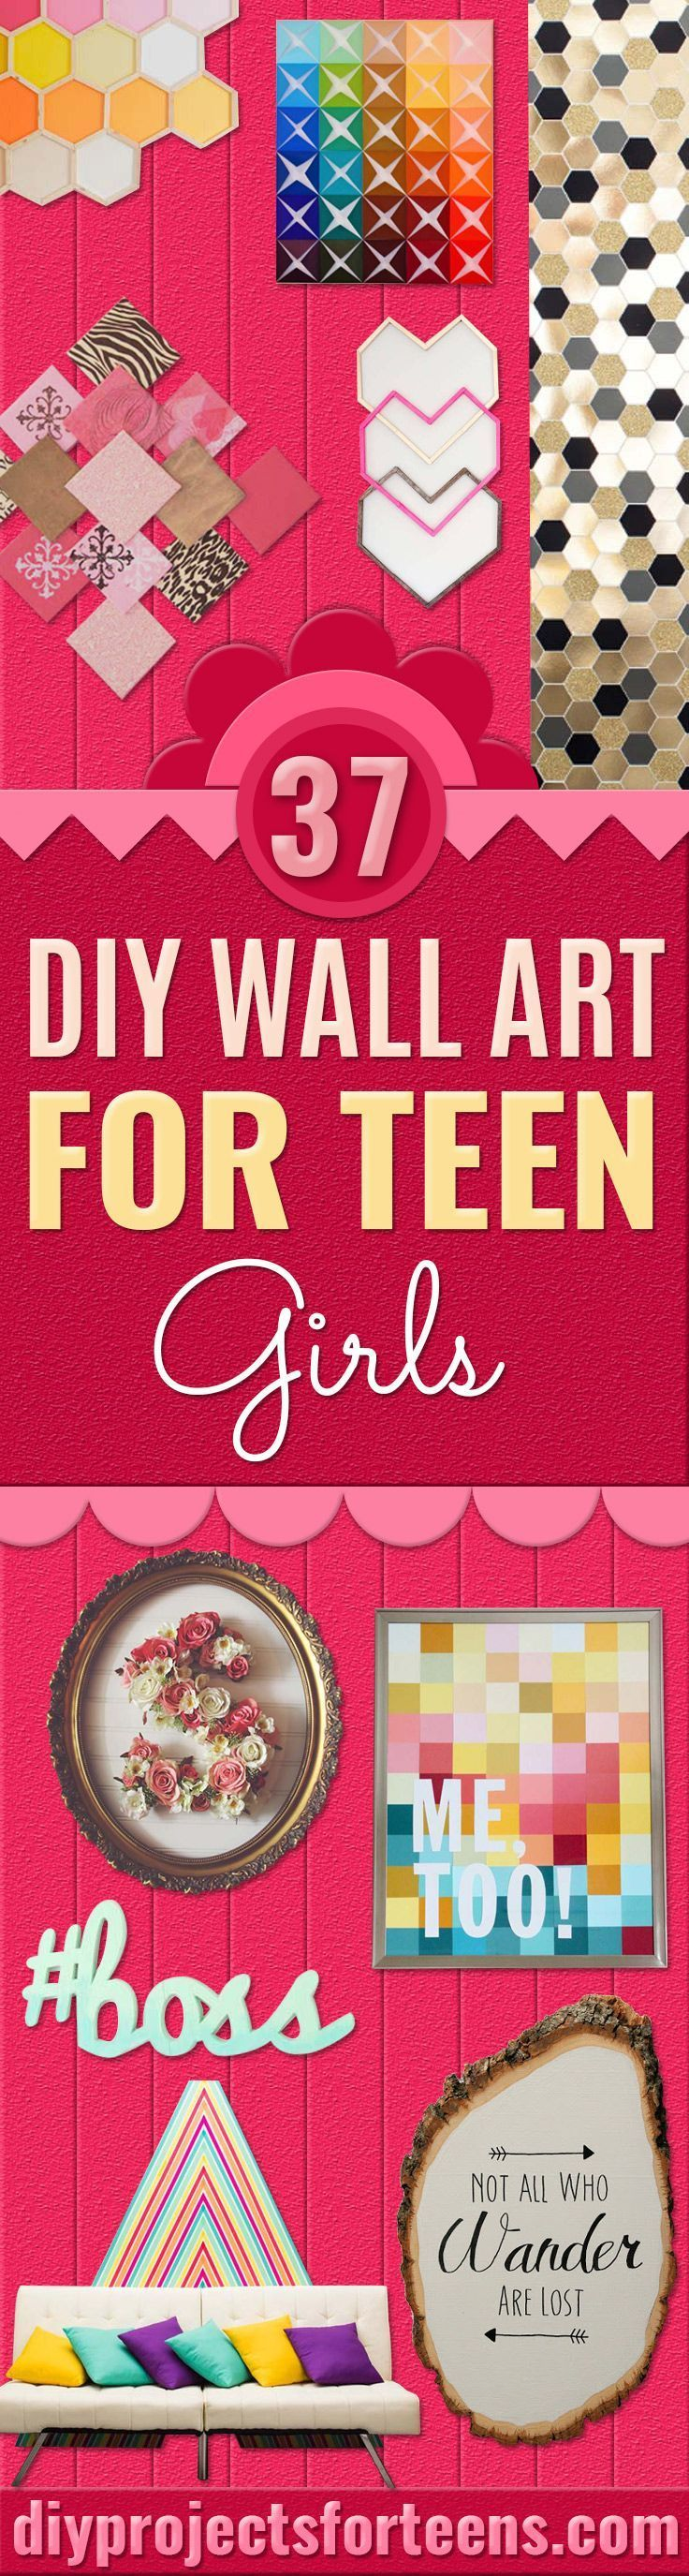 17 best images about diy wall art ideas on pinterest for Diy crafts for boys